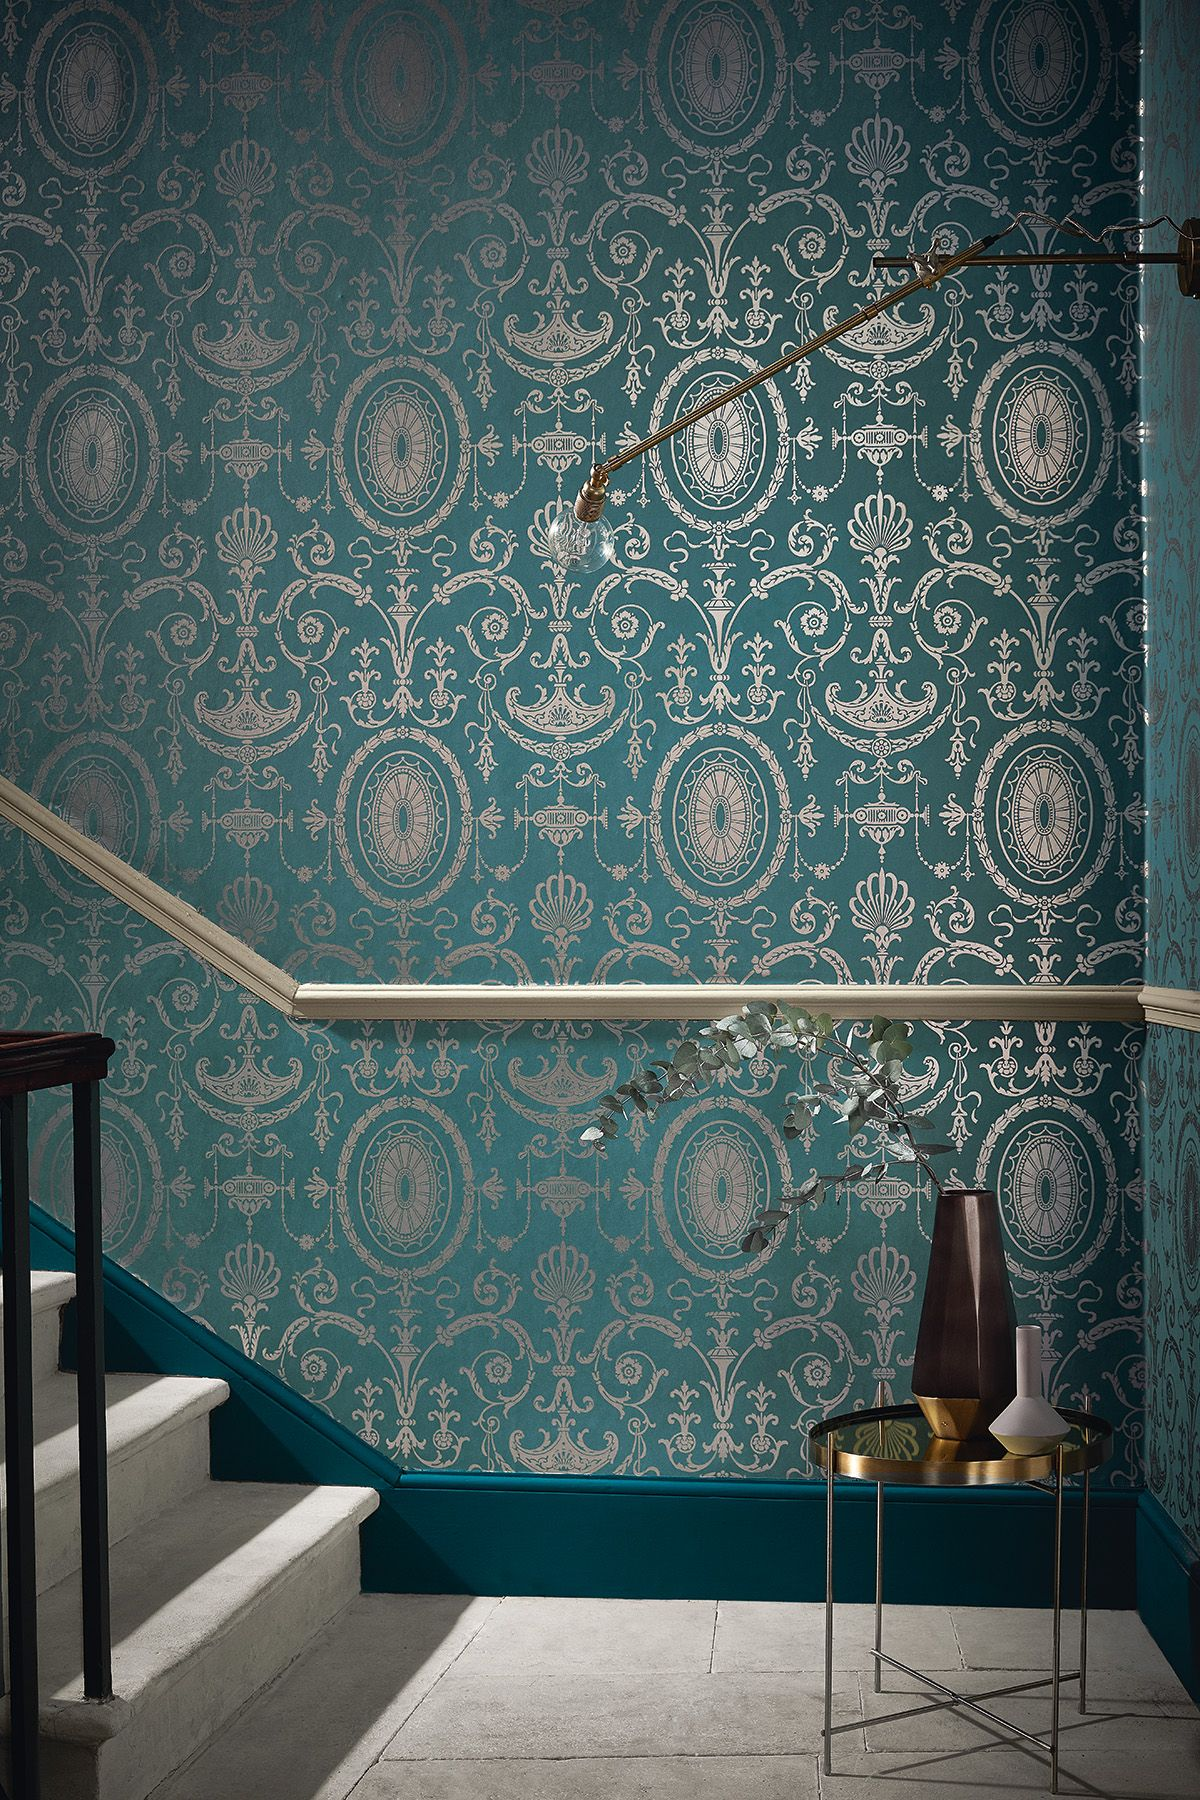 Wallpaper Pall Mall – Canton Gold Dado painted in Portland Stone